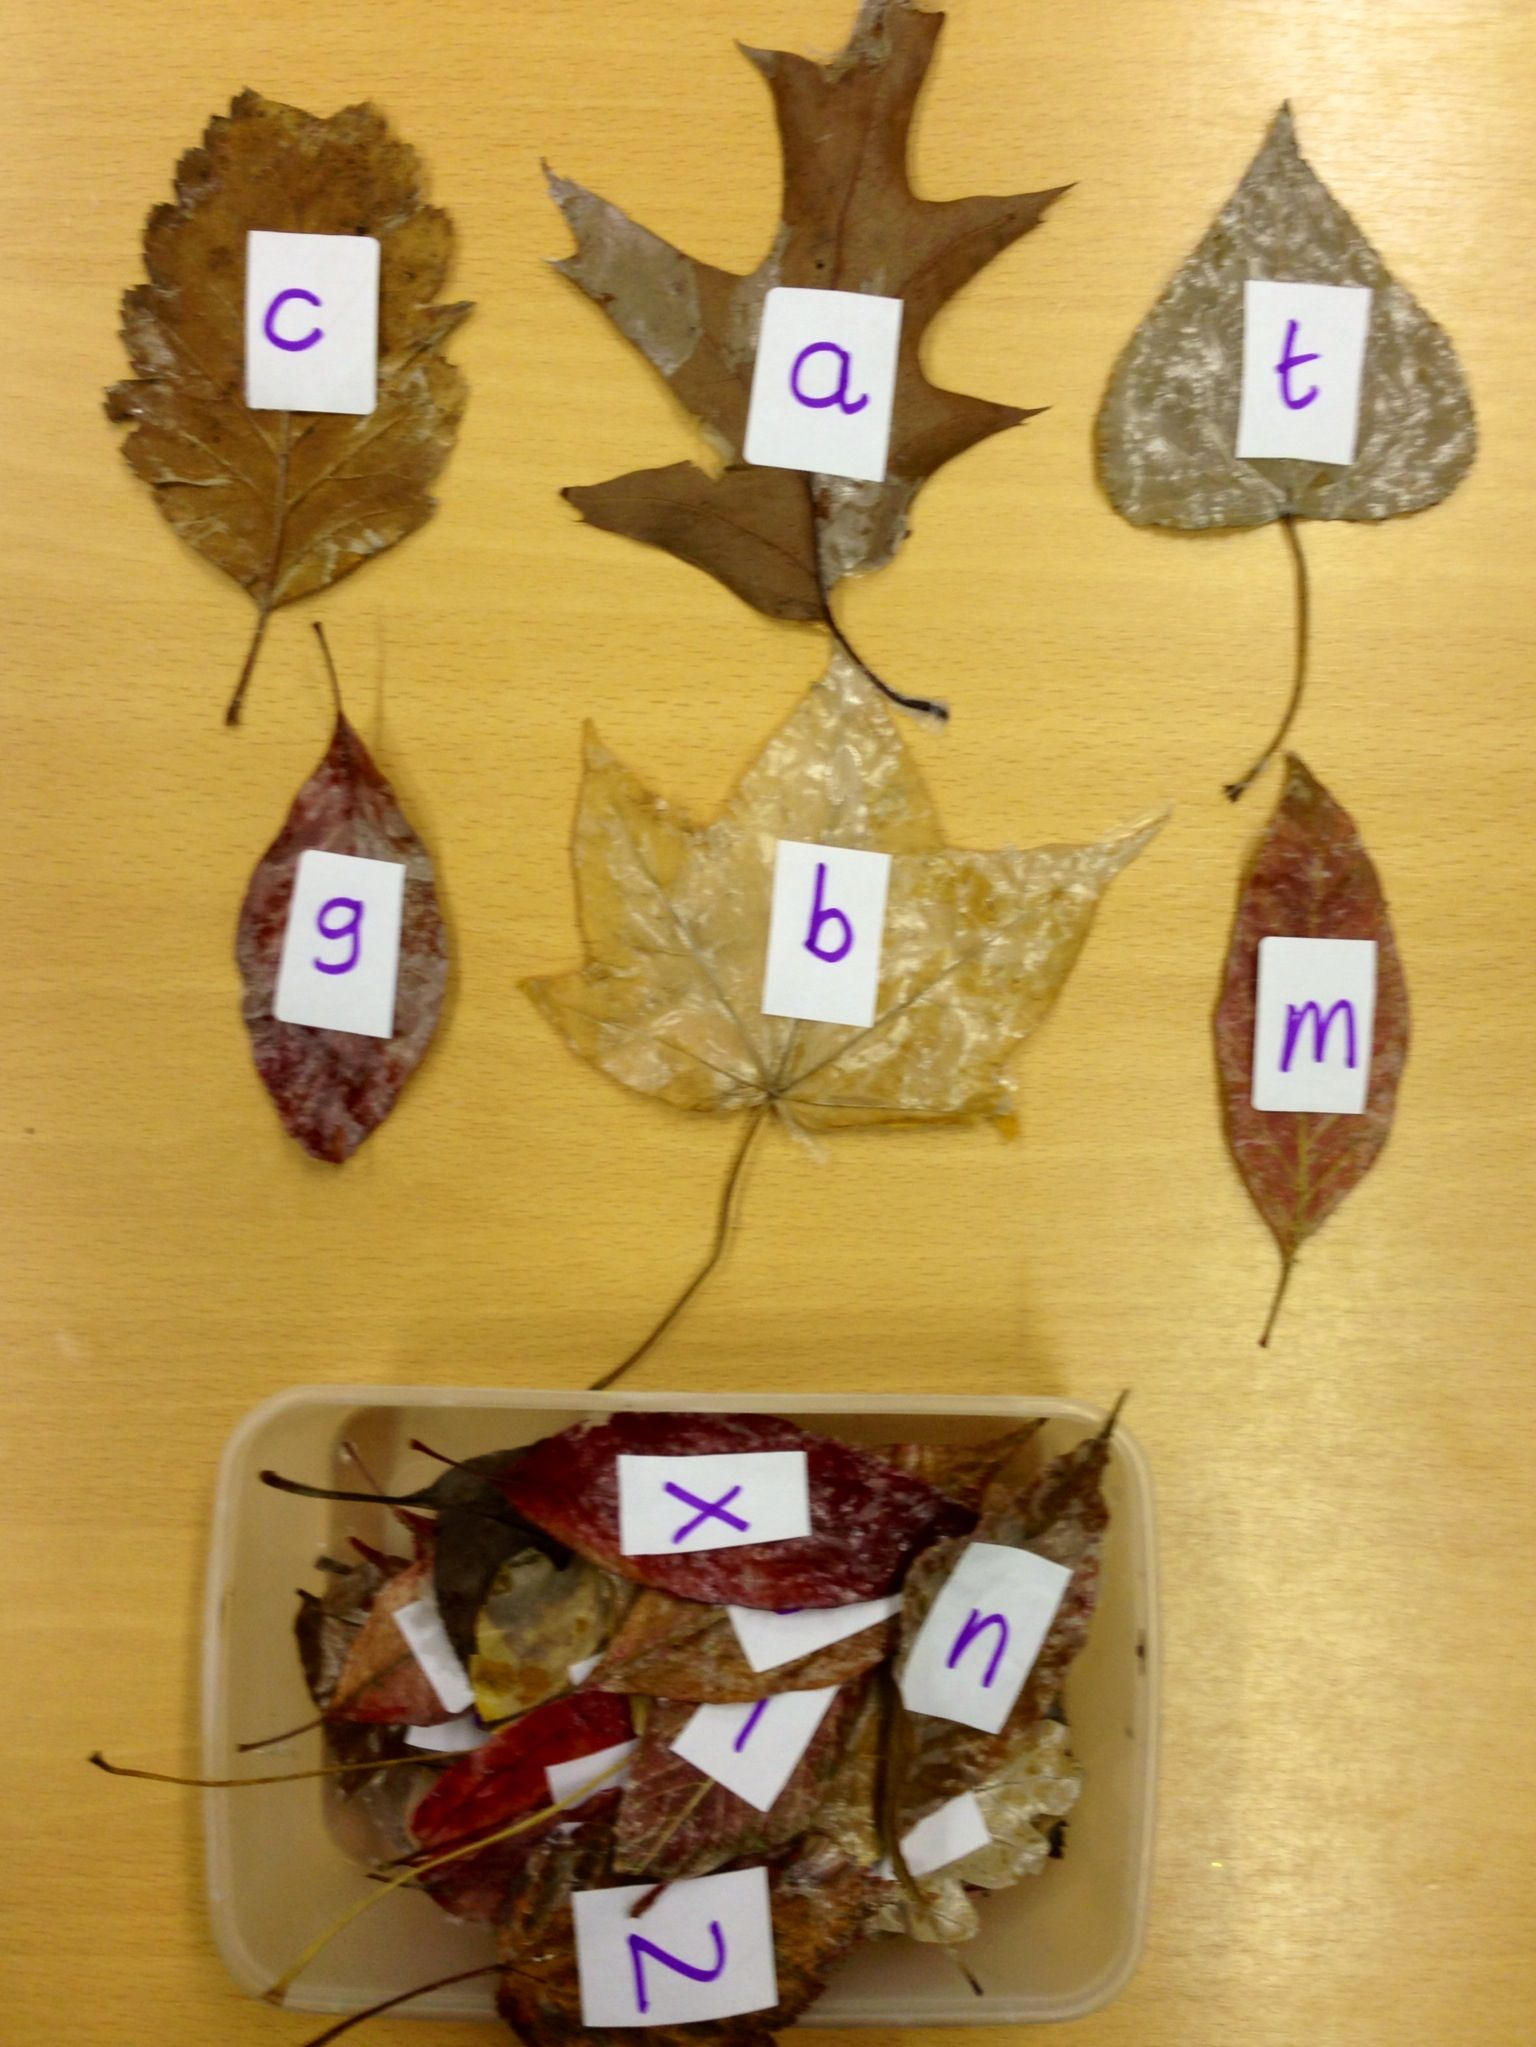 We Re Going On A Leaf Hunt We Hid Leaves With Different Letters On Around The Classroom And